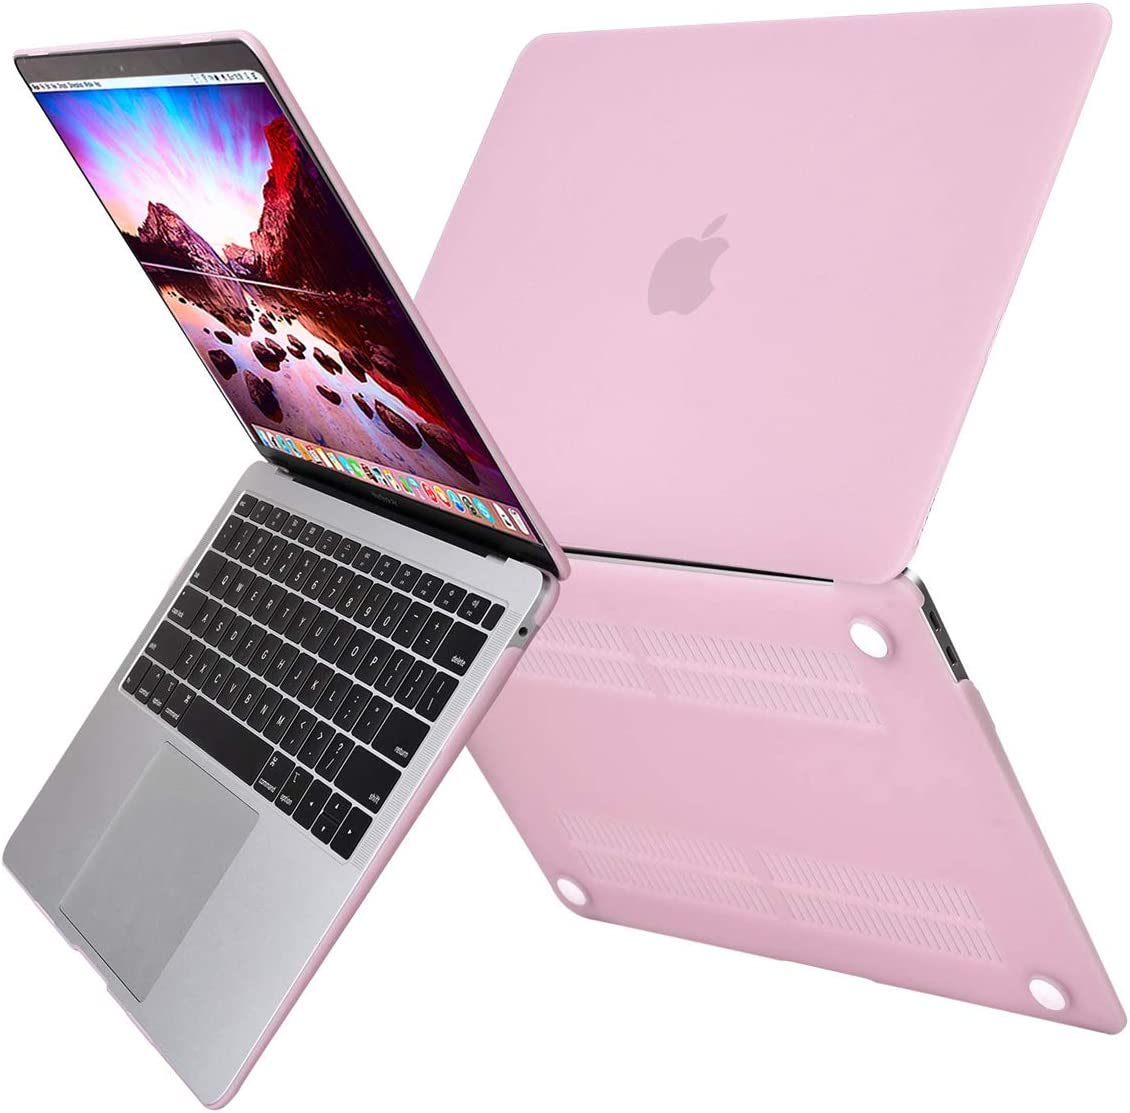 Plastic Hard Case Shell Cover Only Compatible with MacBook Air 13 inch with Touch ID Midnight Green MOSISO MacBook Air 13 inch Case 2020 2019 2018 Release A1932 A2179 with Retina Display